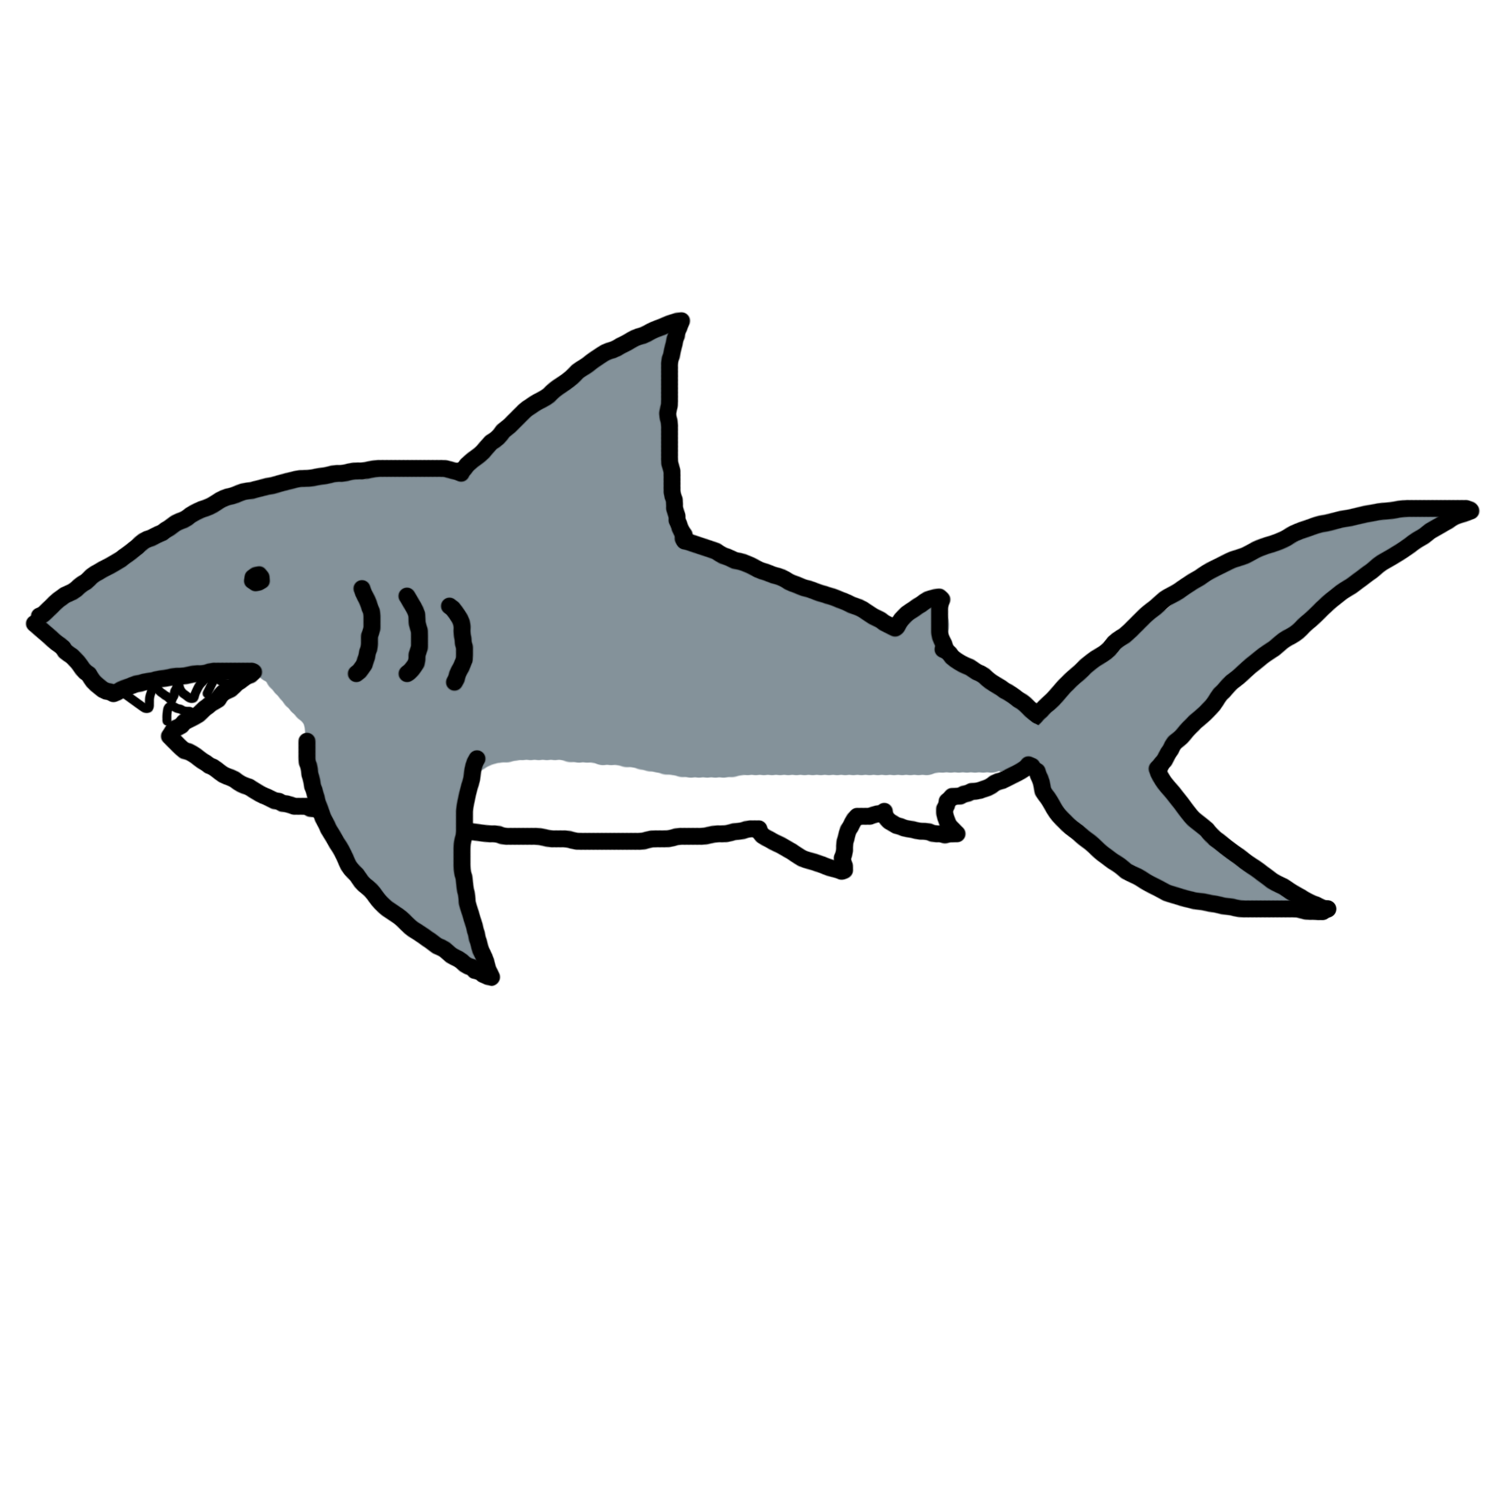 Fish easy clipart picture black and white library Shark Clipart | Children's Ministry | Pinterest | Shark and Clip art picture black and white library